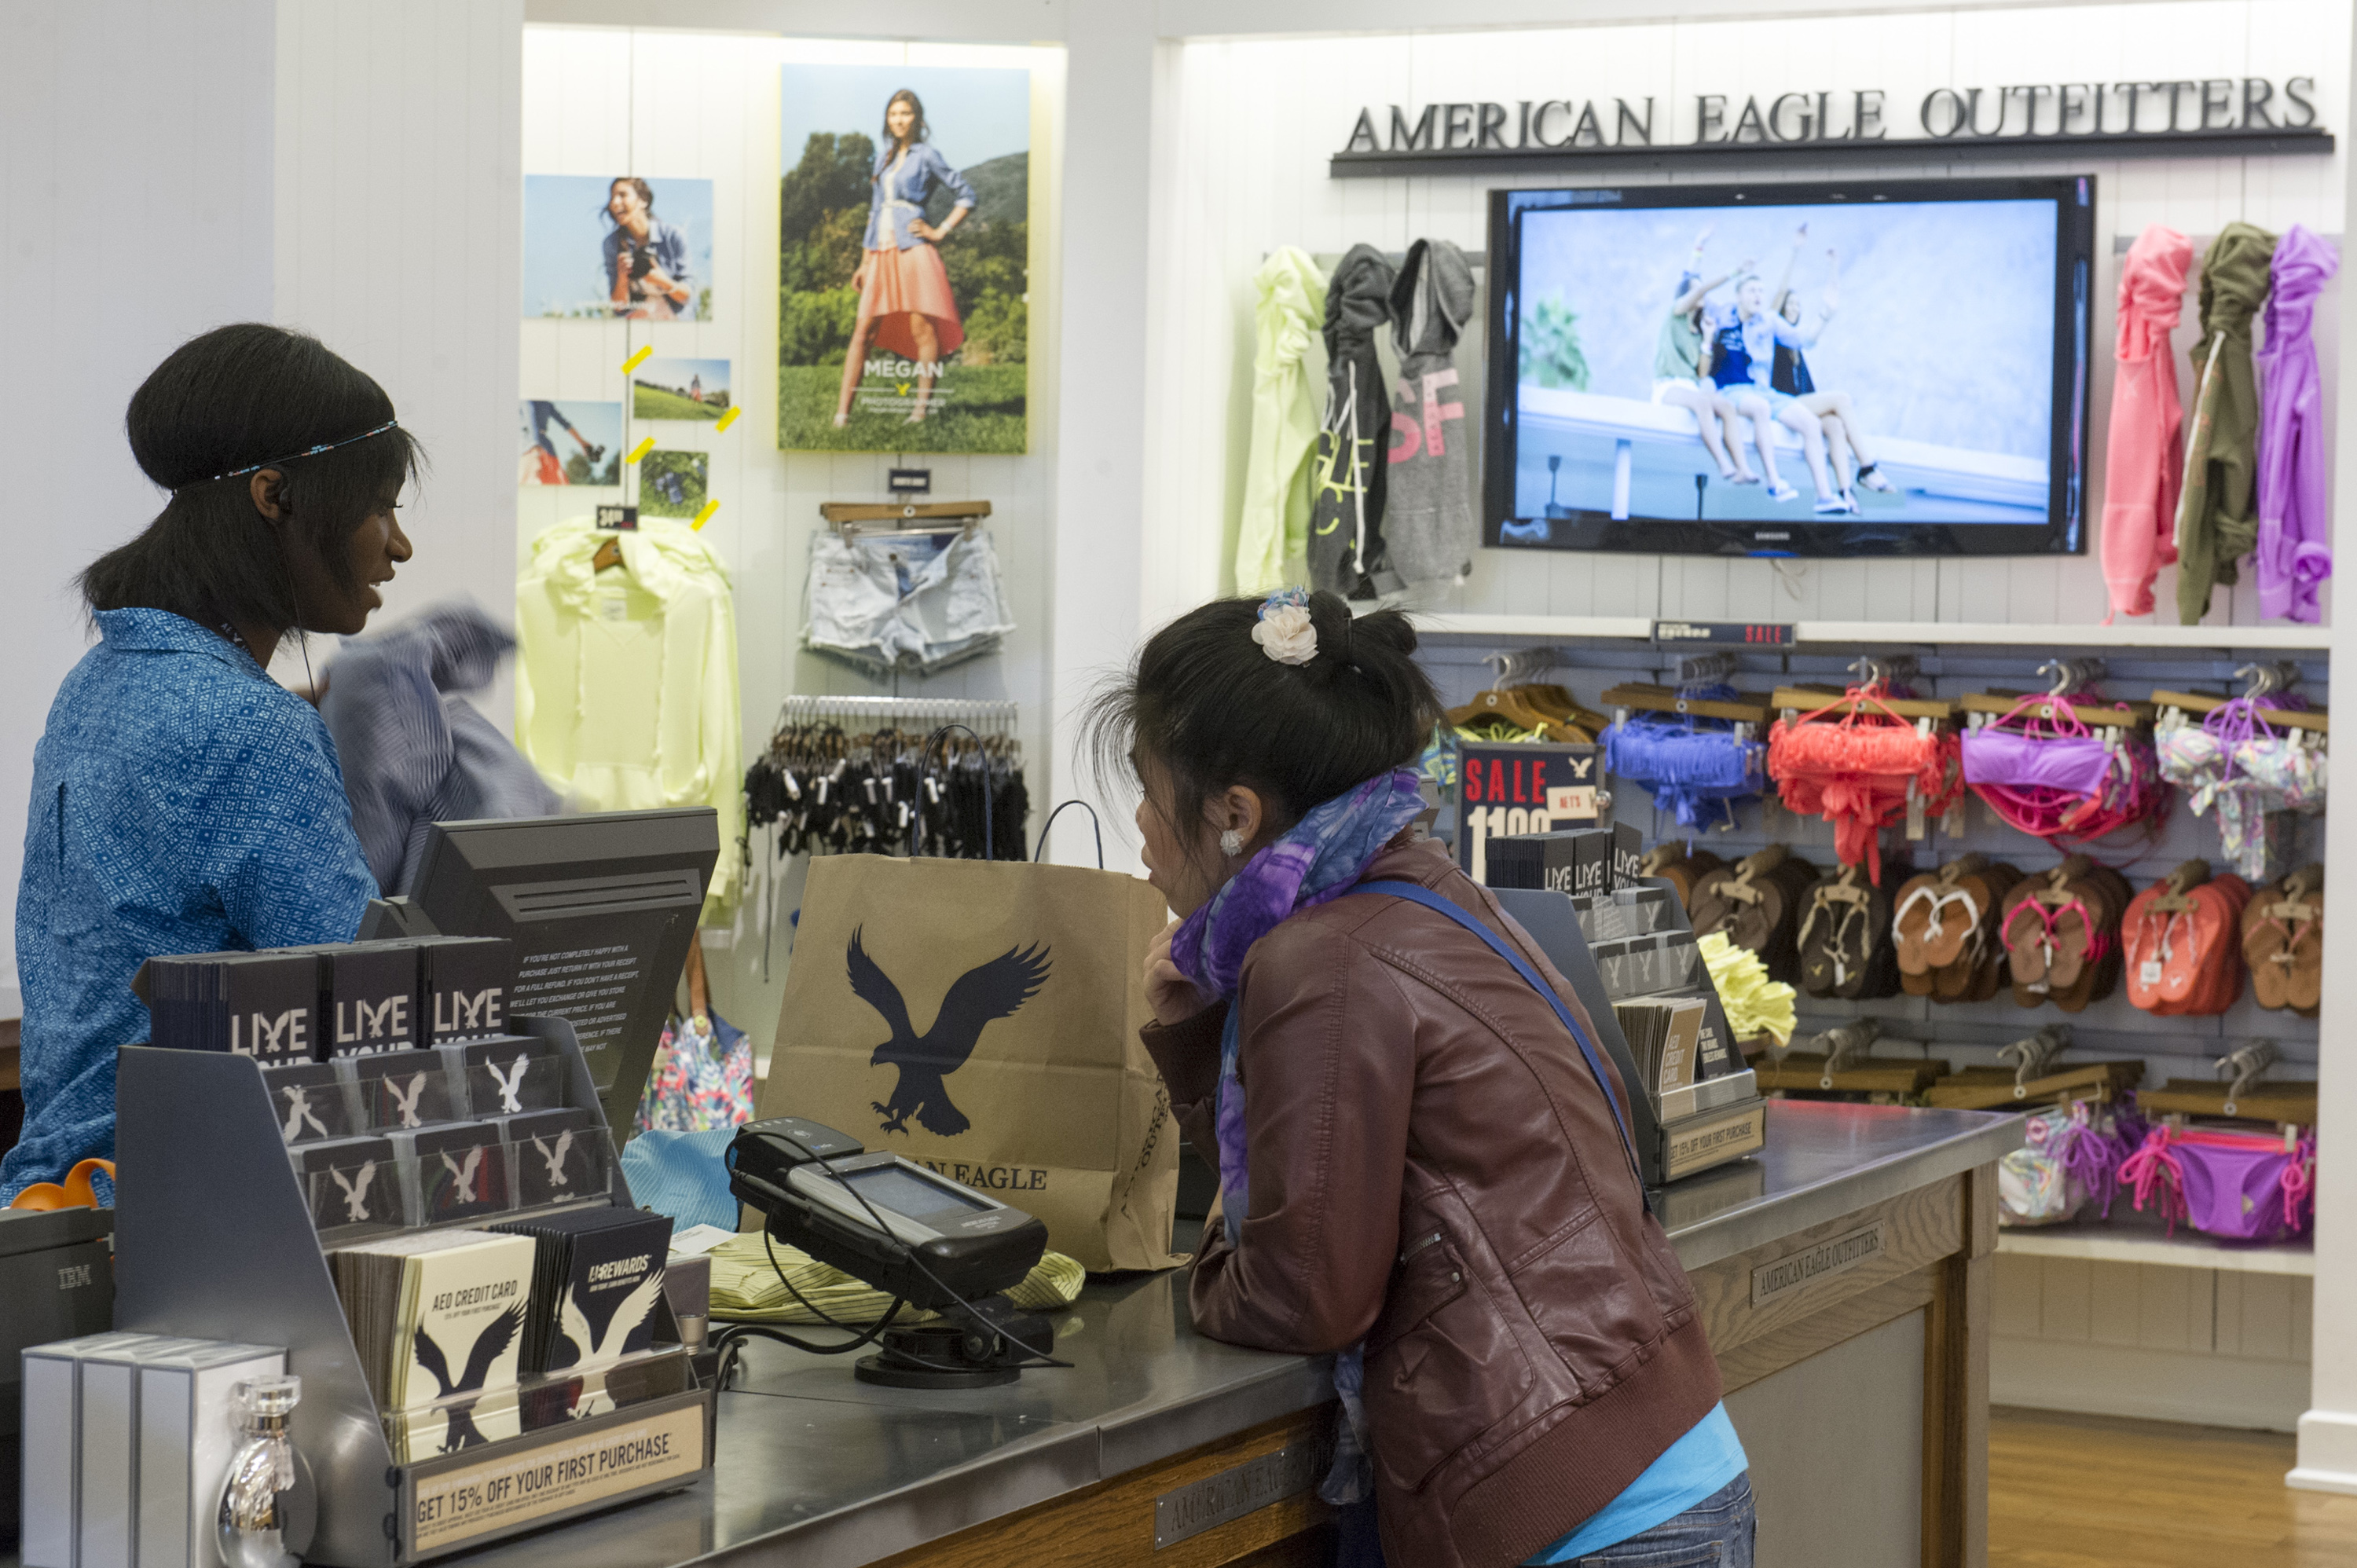 American Eagle Outfitters Inc. Announces Earnings